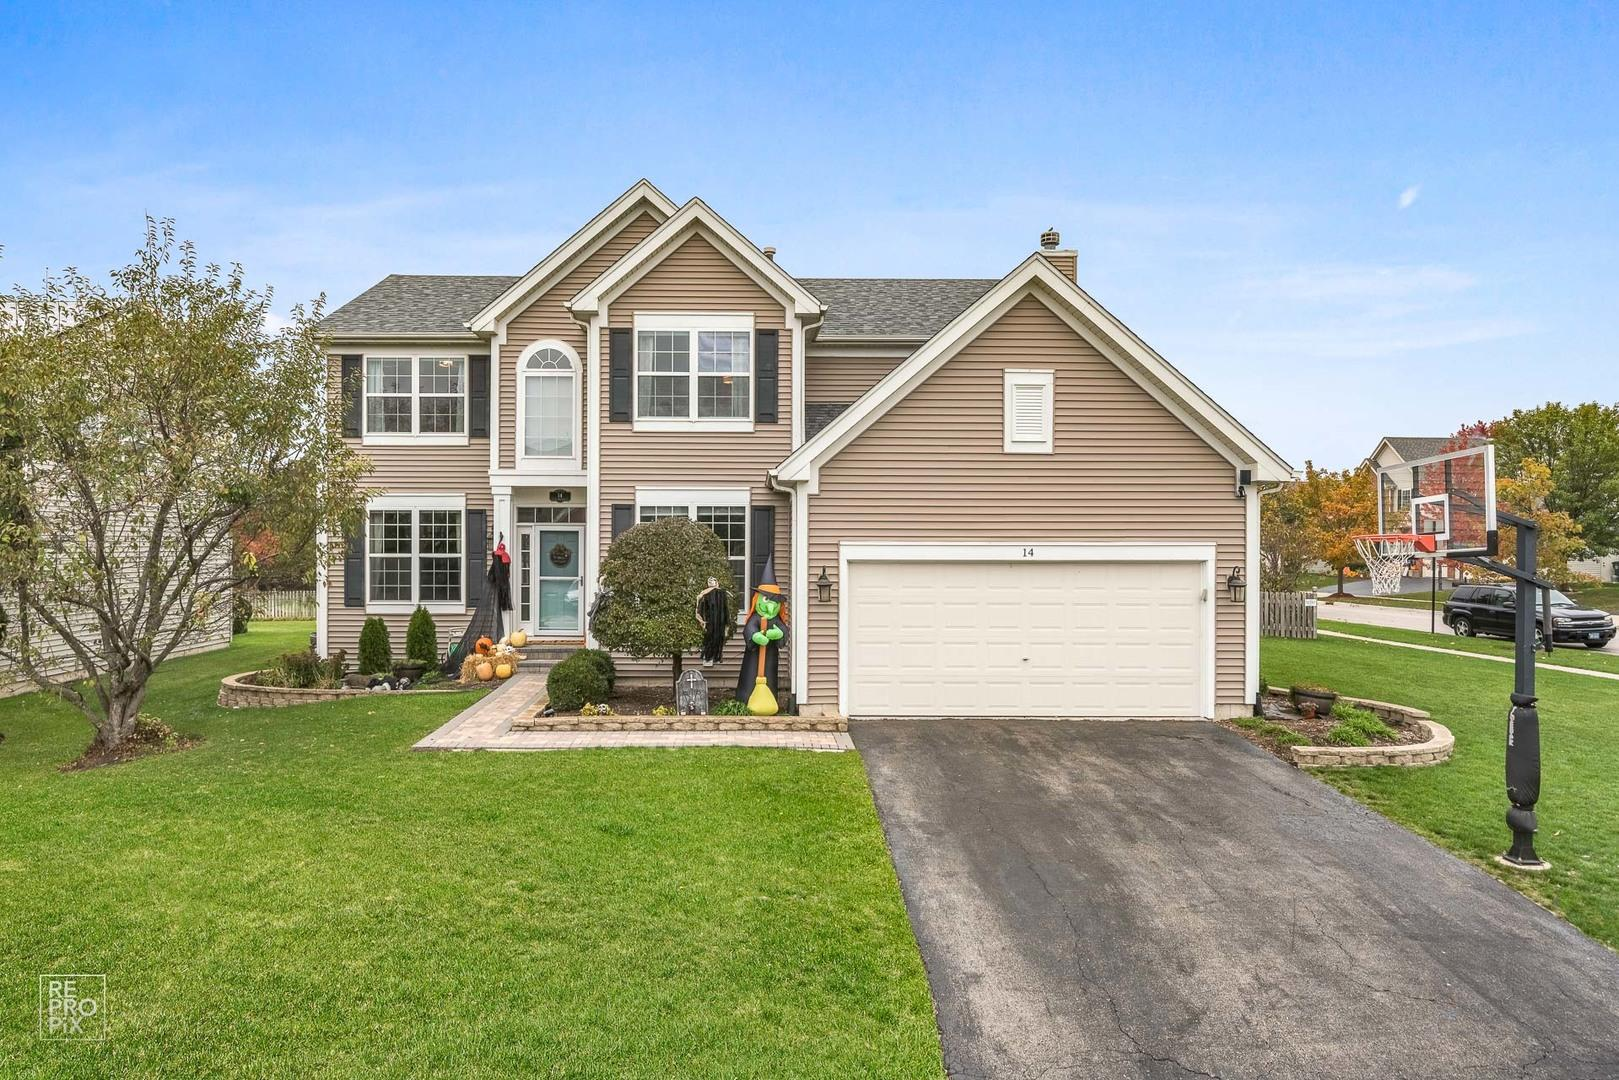 14 E Ellington Court, South Elgin, IL 60177 - #: 10910462